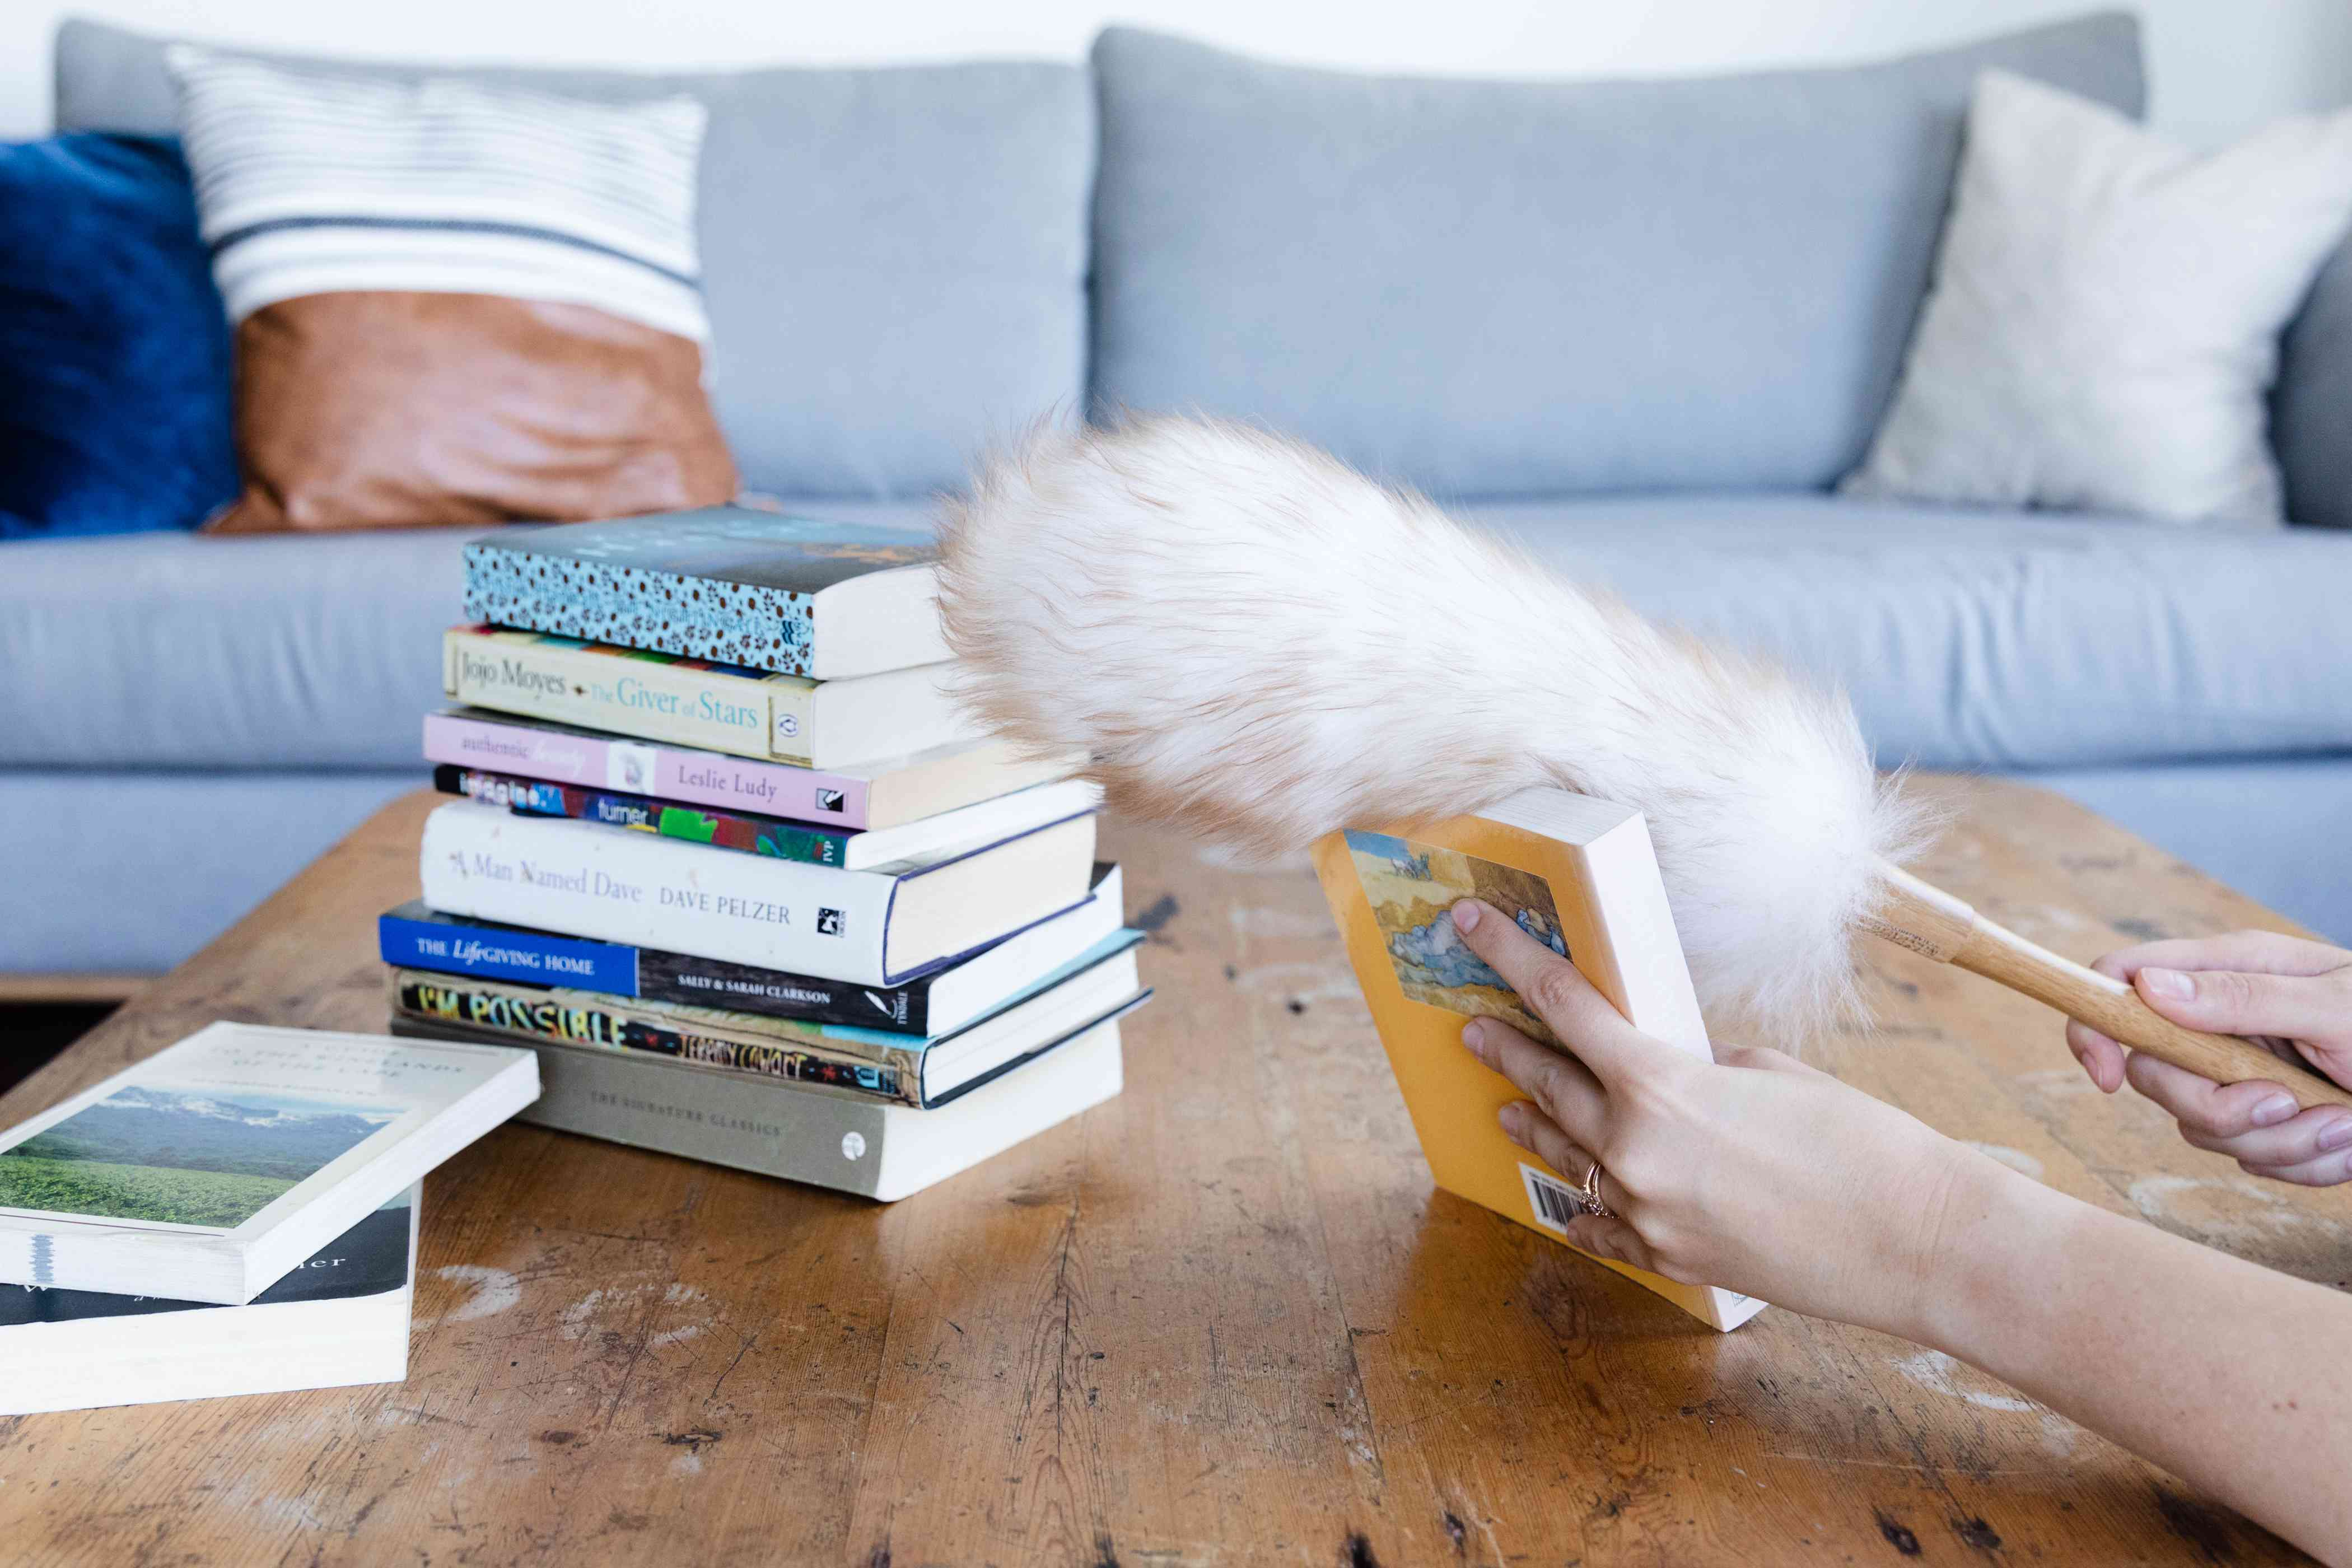 removing and dusting books from bookshelves